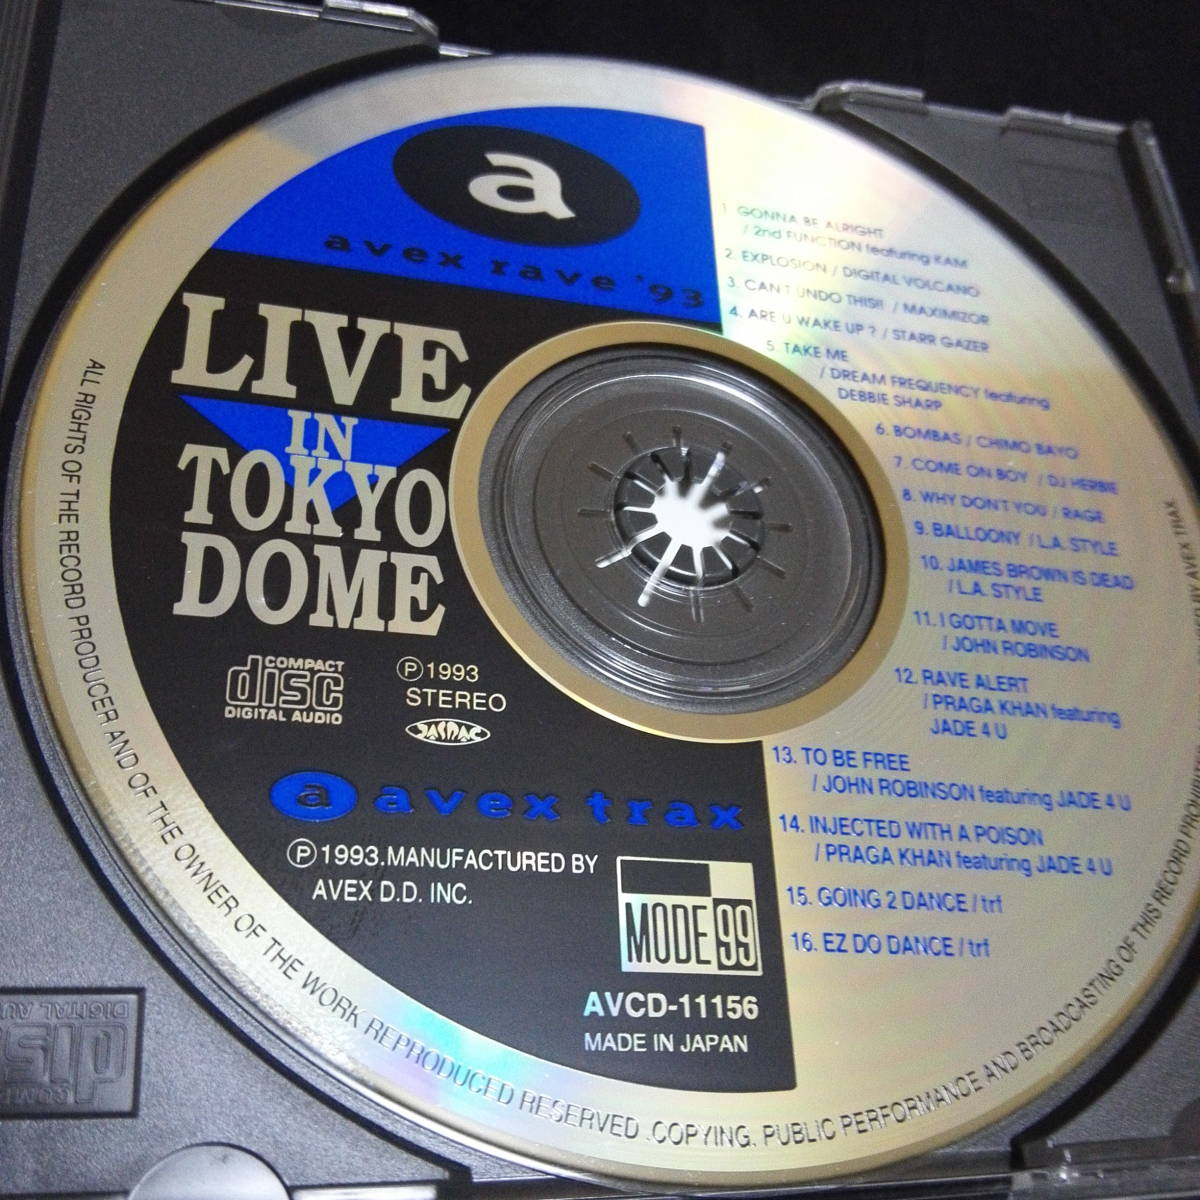 avex rave 93 LIVE in Tokyo Dome 帯付 全16曲LIVE 音源CD ジュリアナテクノ イタロ 90s DISCO JHON ROBINSON trf Maximizor L.A.STYLE_画像10